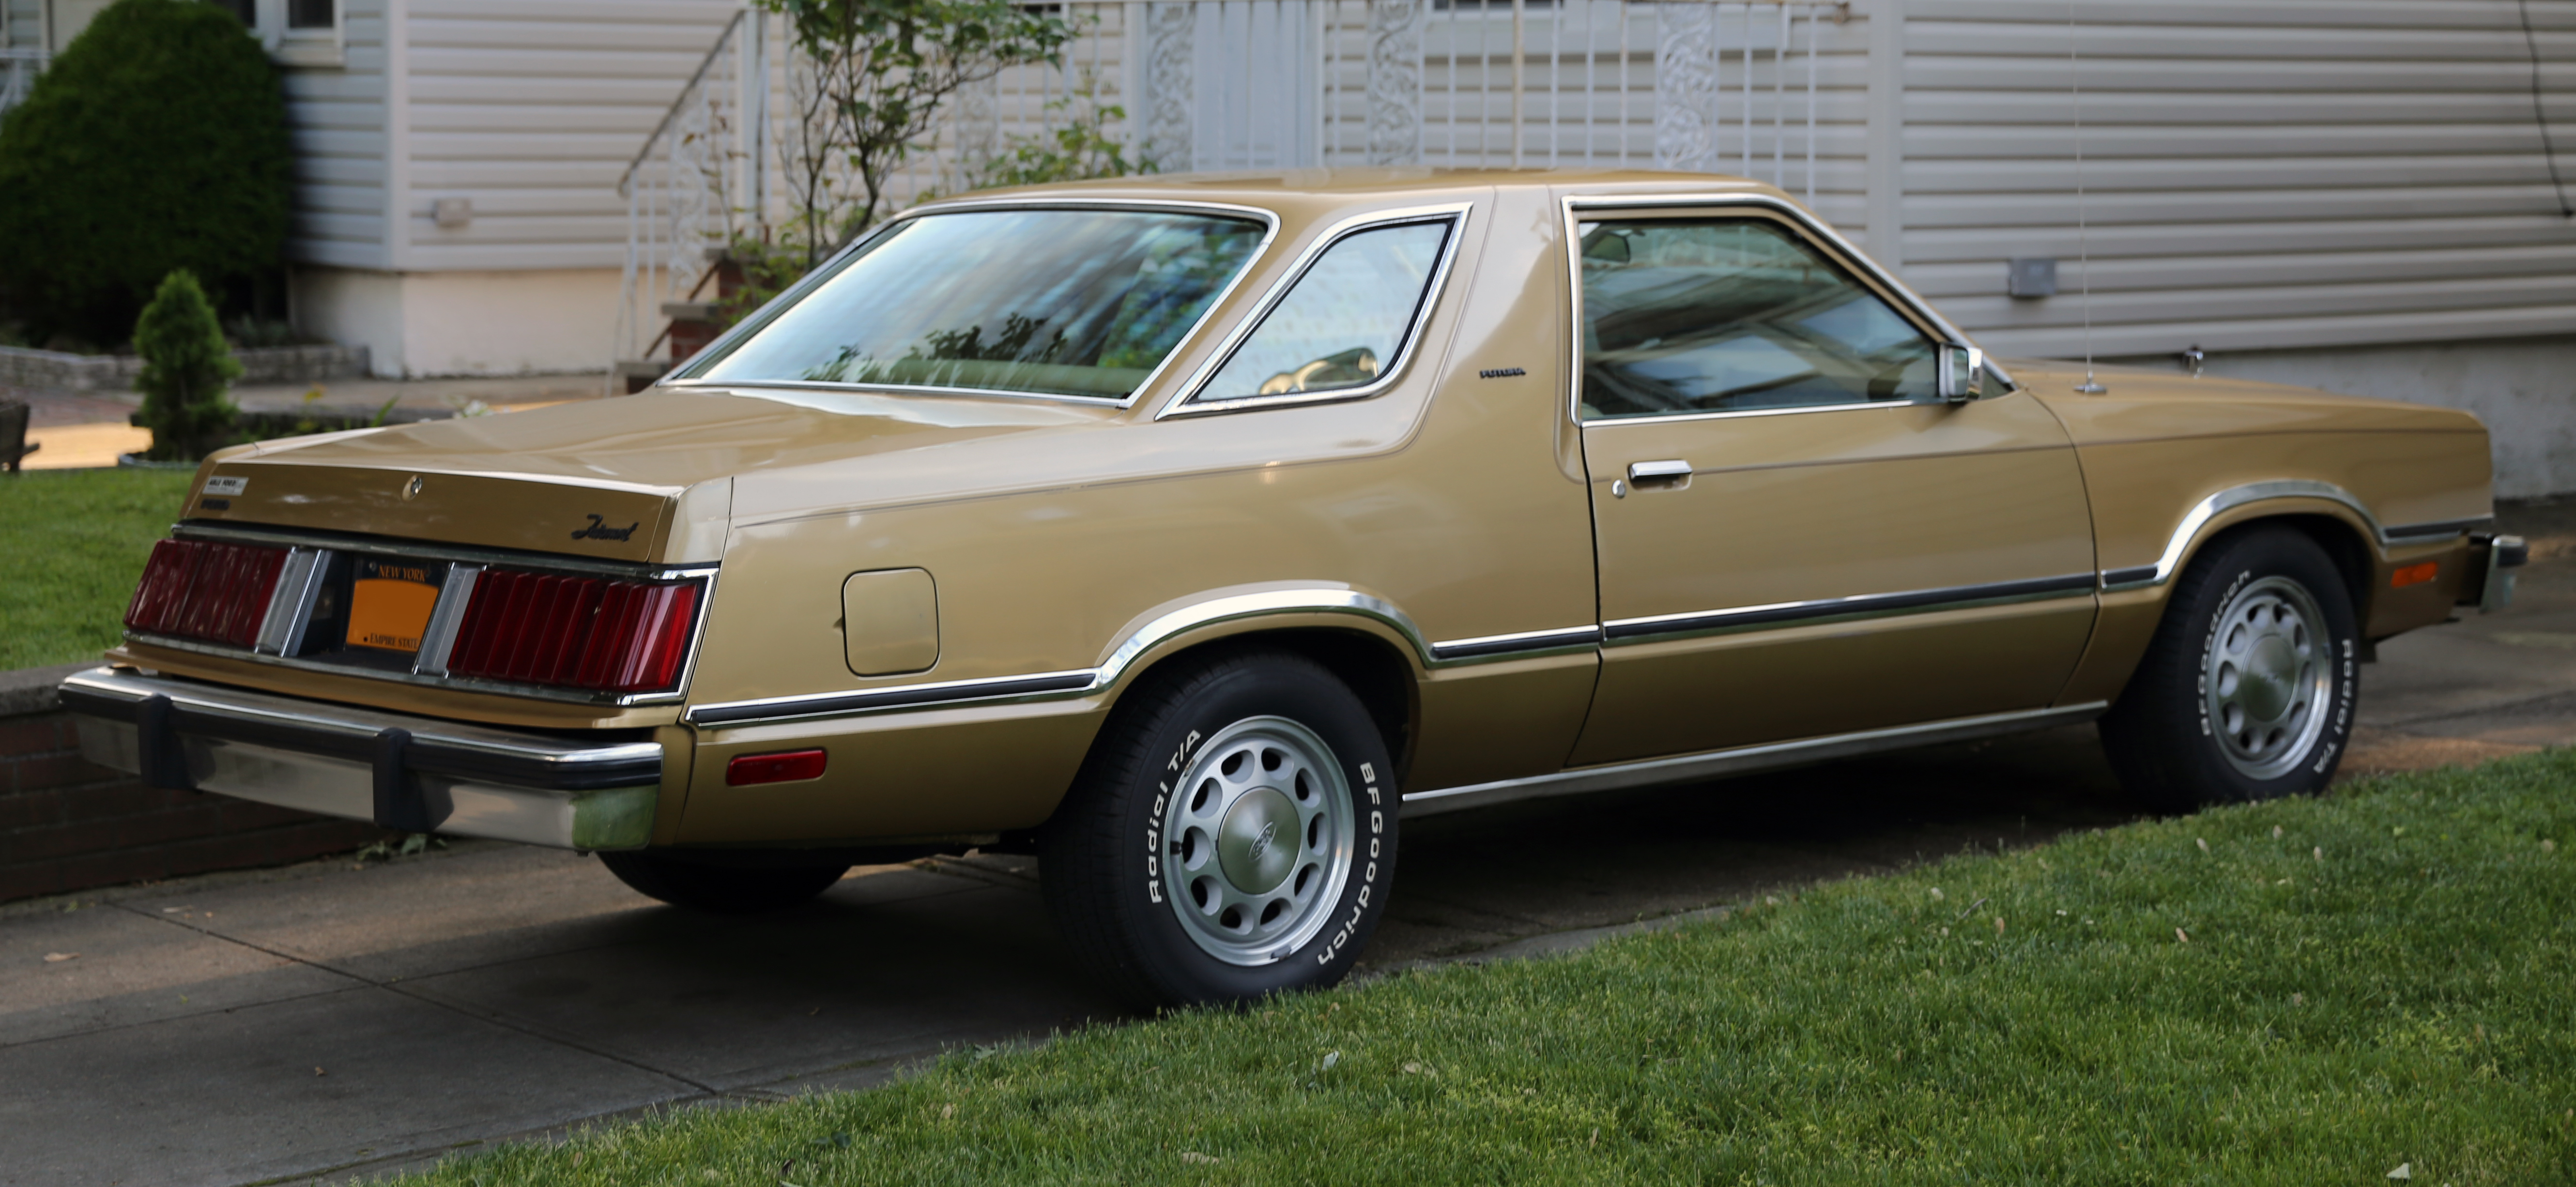 file 1980 ford fairmont futura rear mustang wheels jpg wikimedia rh commons wikimedia org 1985 Ford Mustang 1985 Ford Mustang